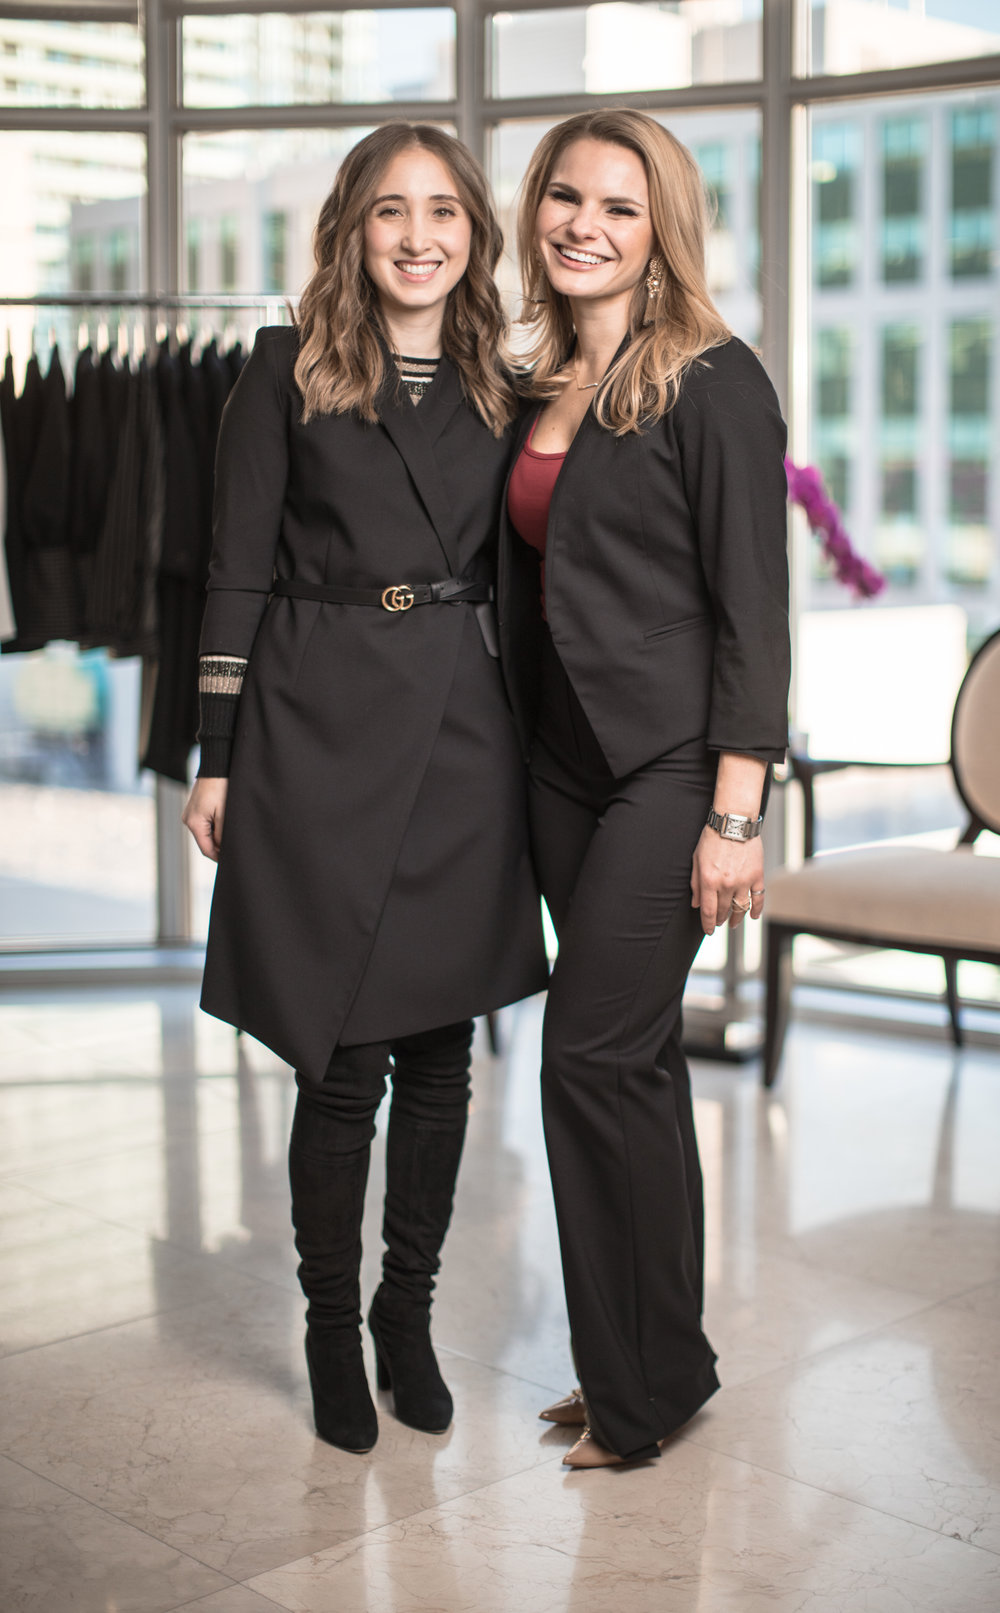 GRAYES FOUNDER STEPHANIE RAY(LEFT) AND MICHELE ROMANOW (RIGHT) PHOTO: VIA GRAYES